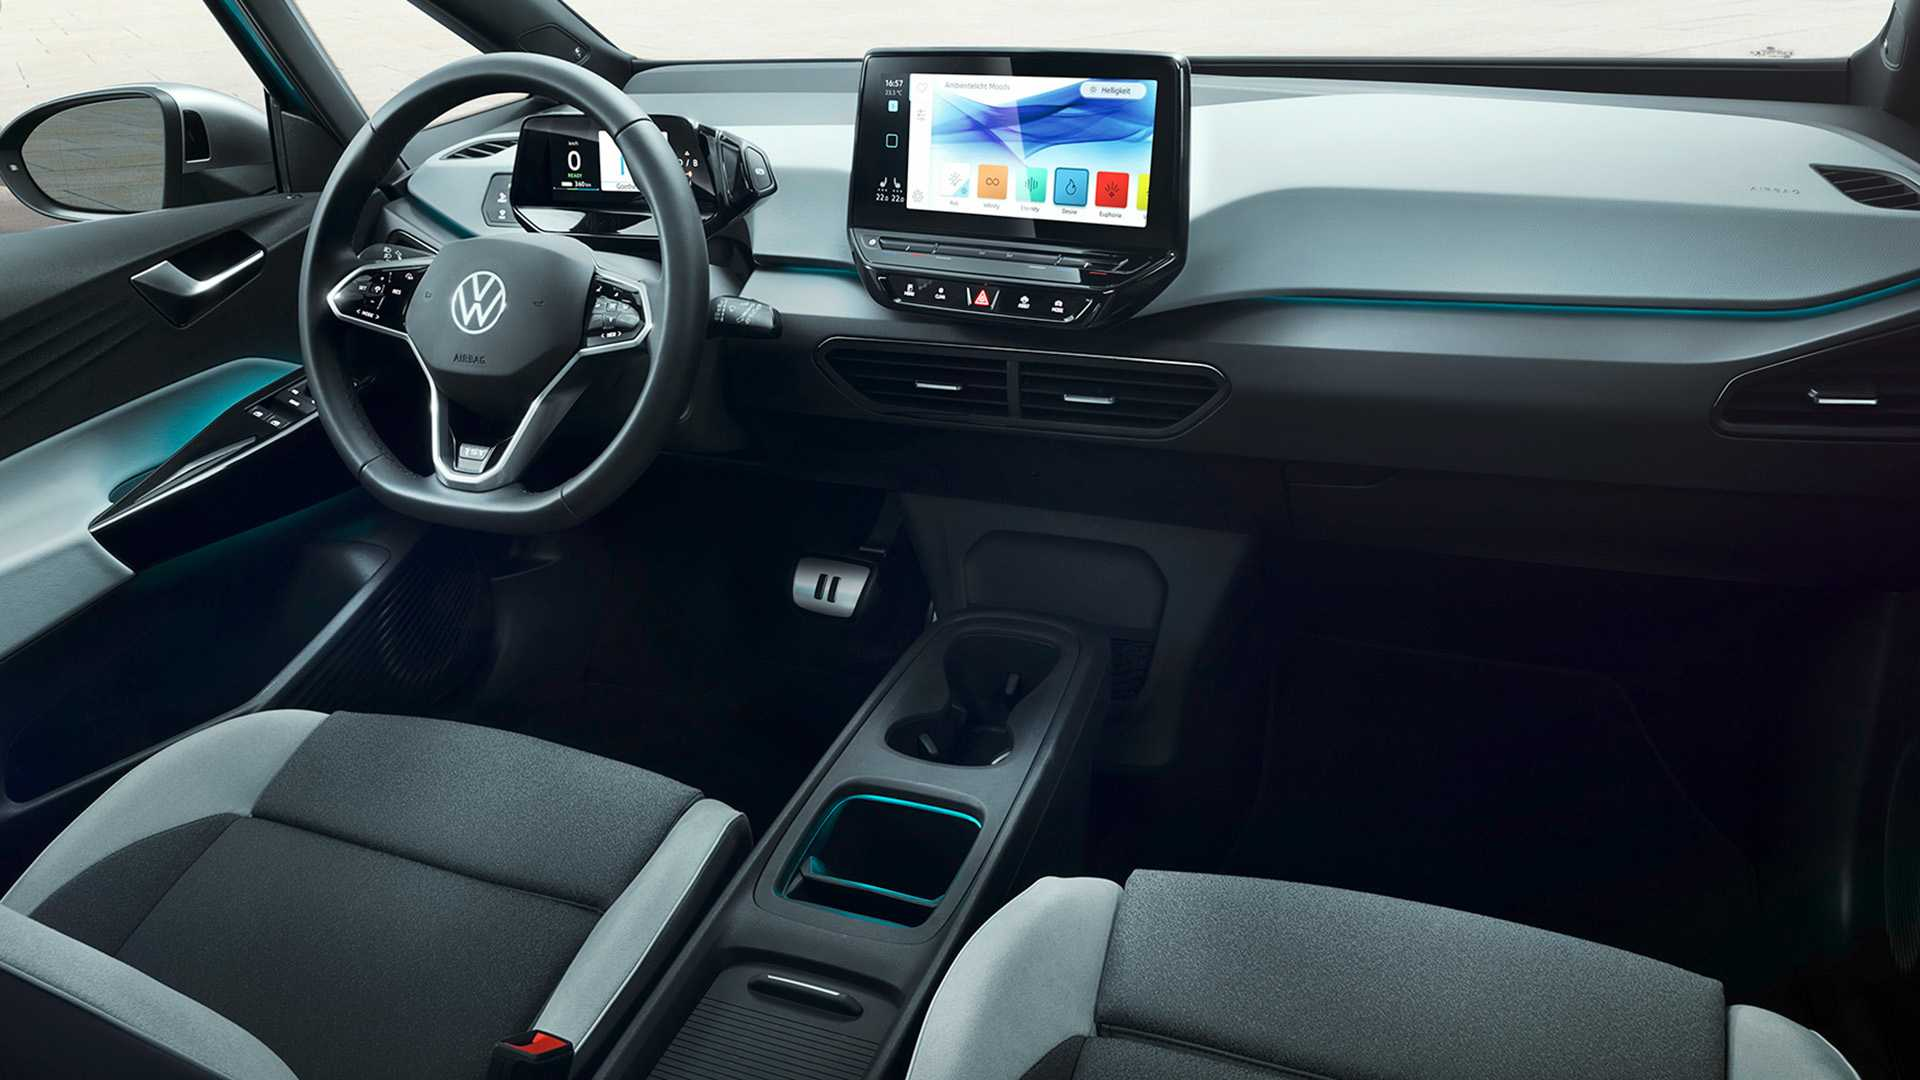 Volkswagen ID.3 Debuts: The First Fully Electric Car For